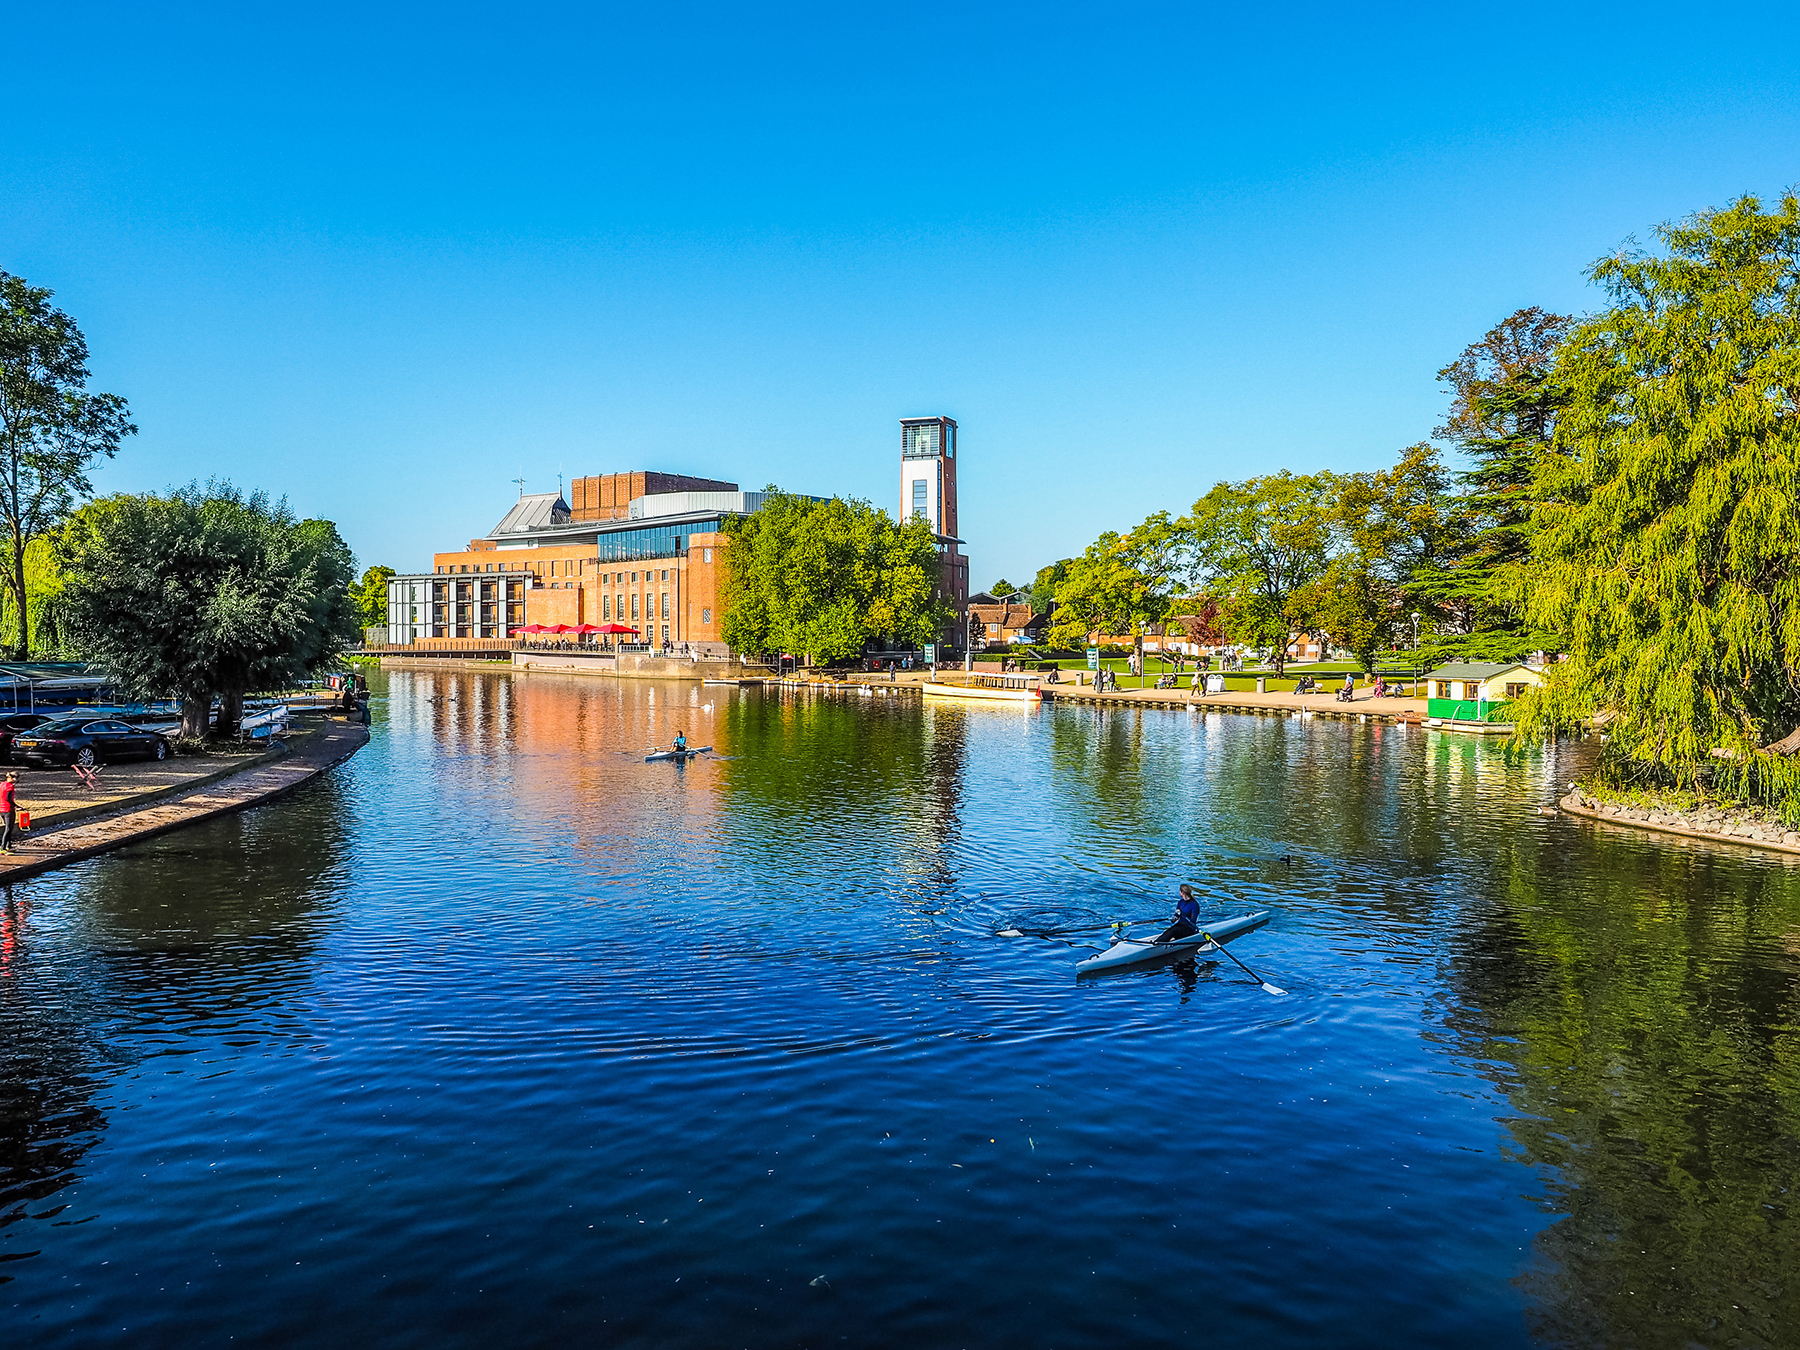 Top 5 Things to do in Stratford-upon-Avon